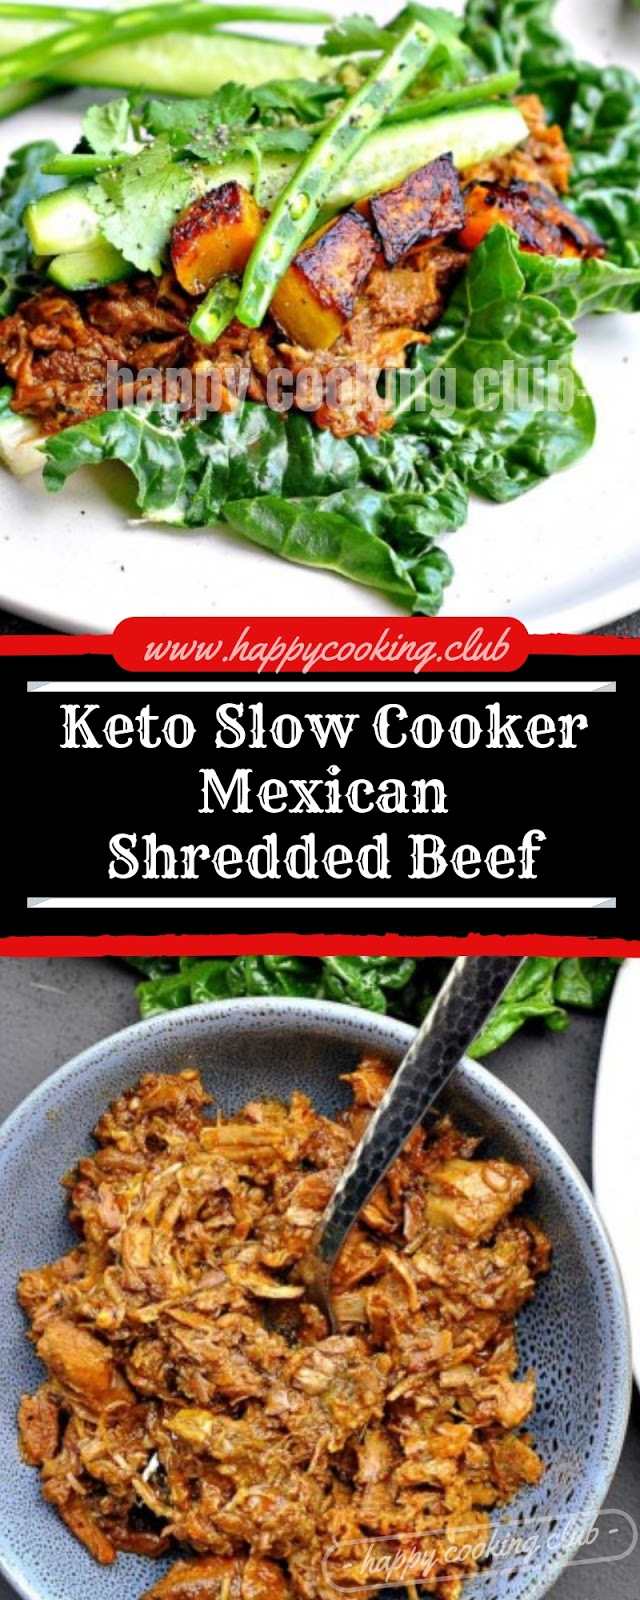 Keto Slow Cooker Mexican Shredded Beef